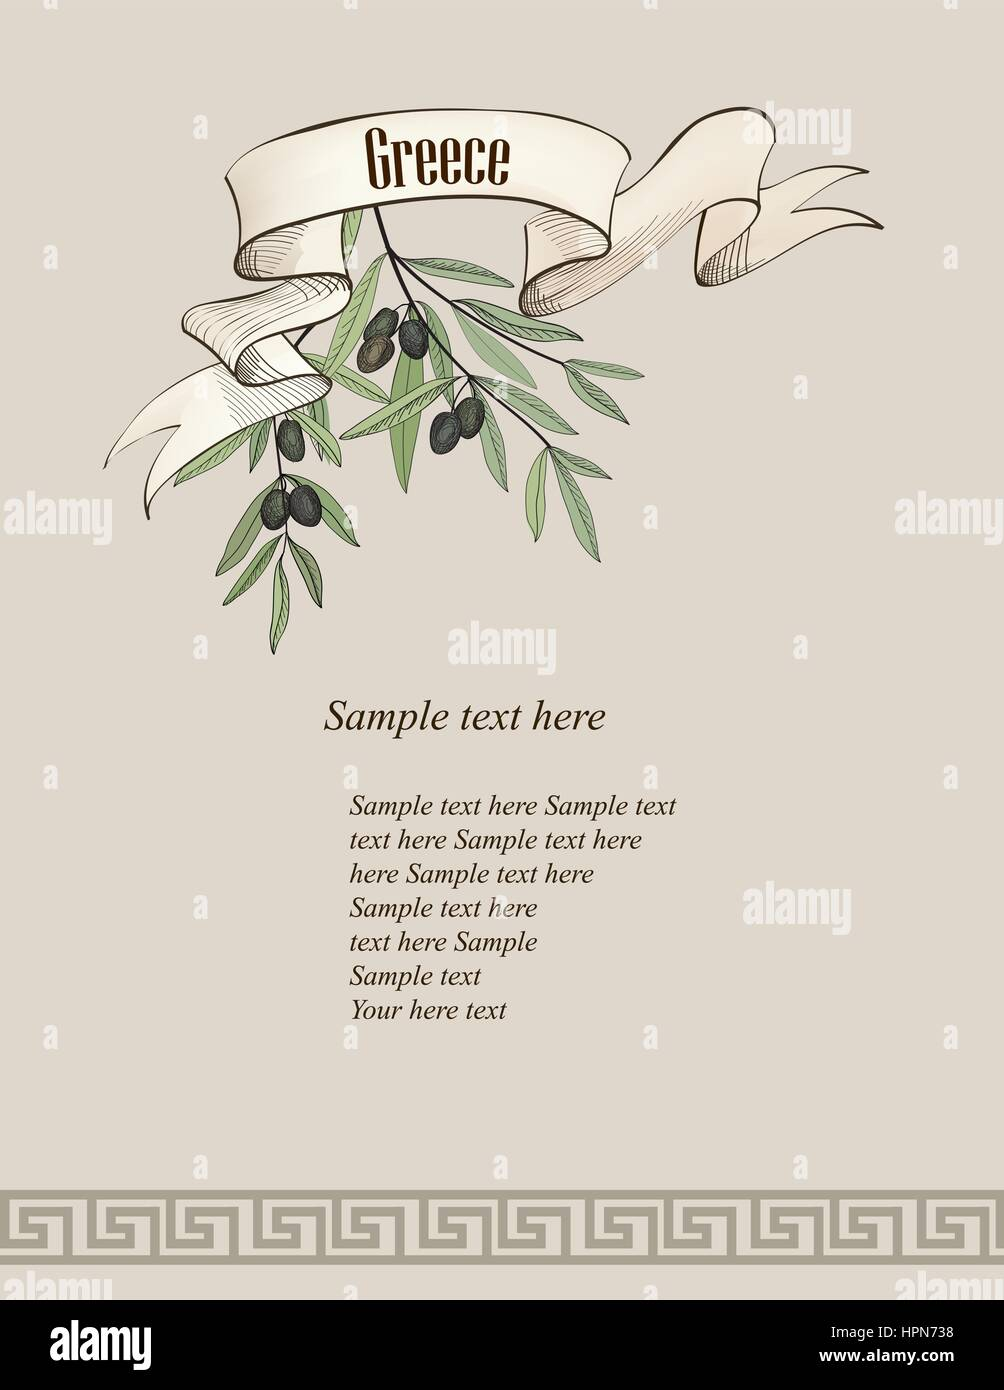 Vintage olive background. Greek old-fashioned wallpaper with copy space. - Stock Vector